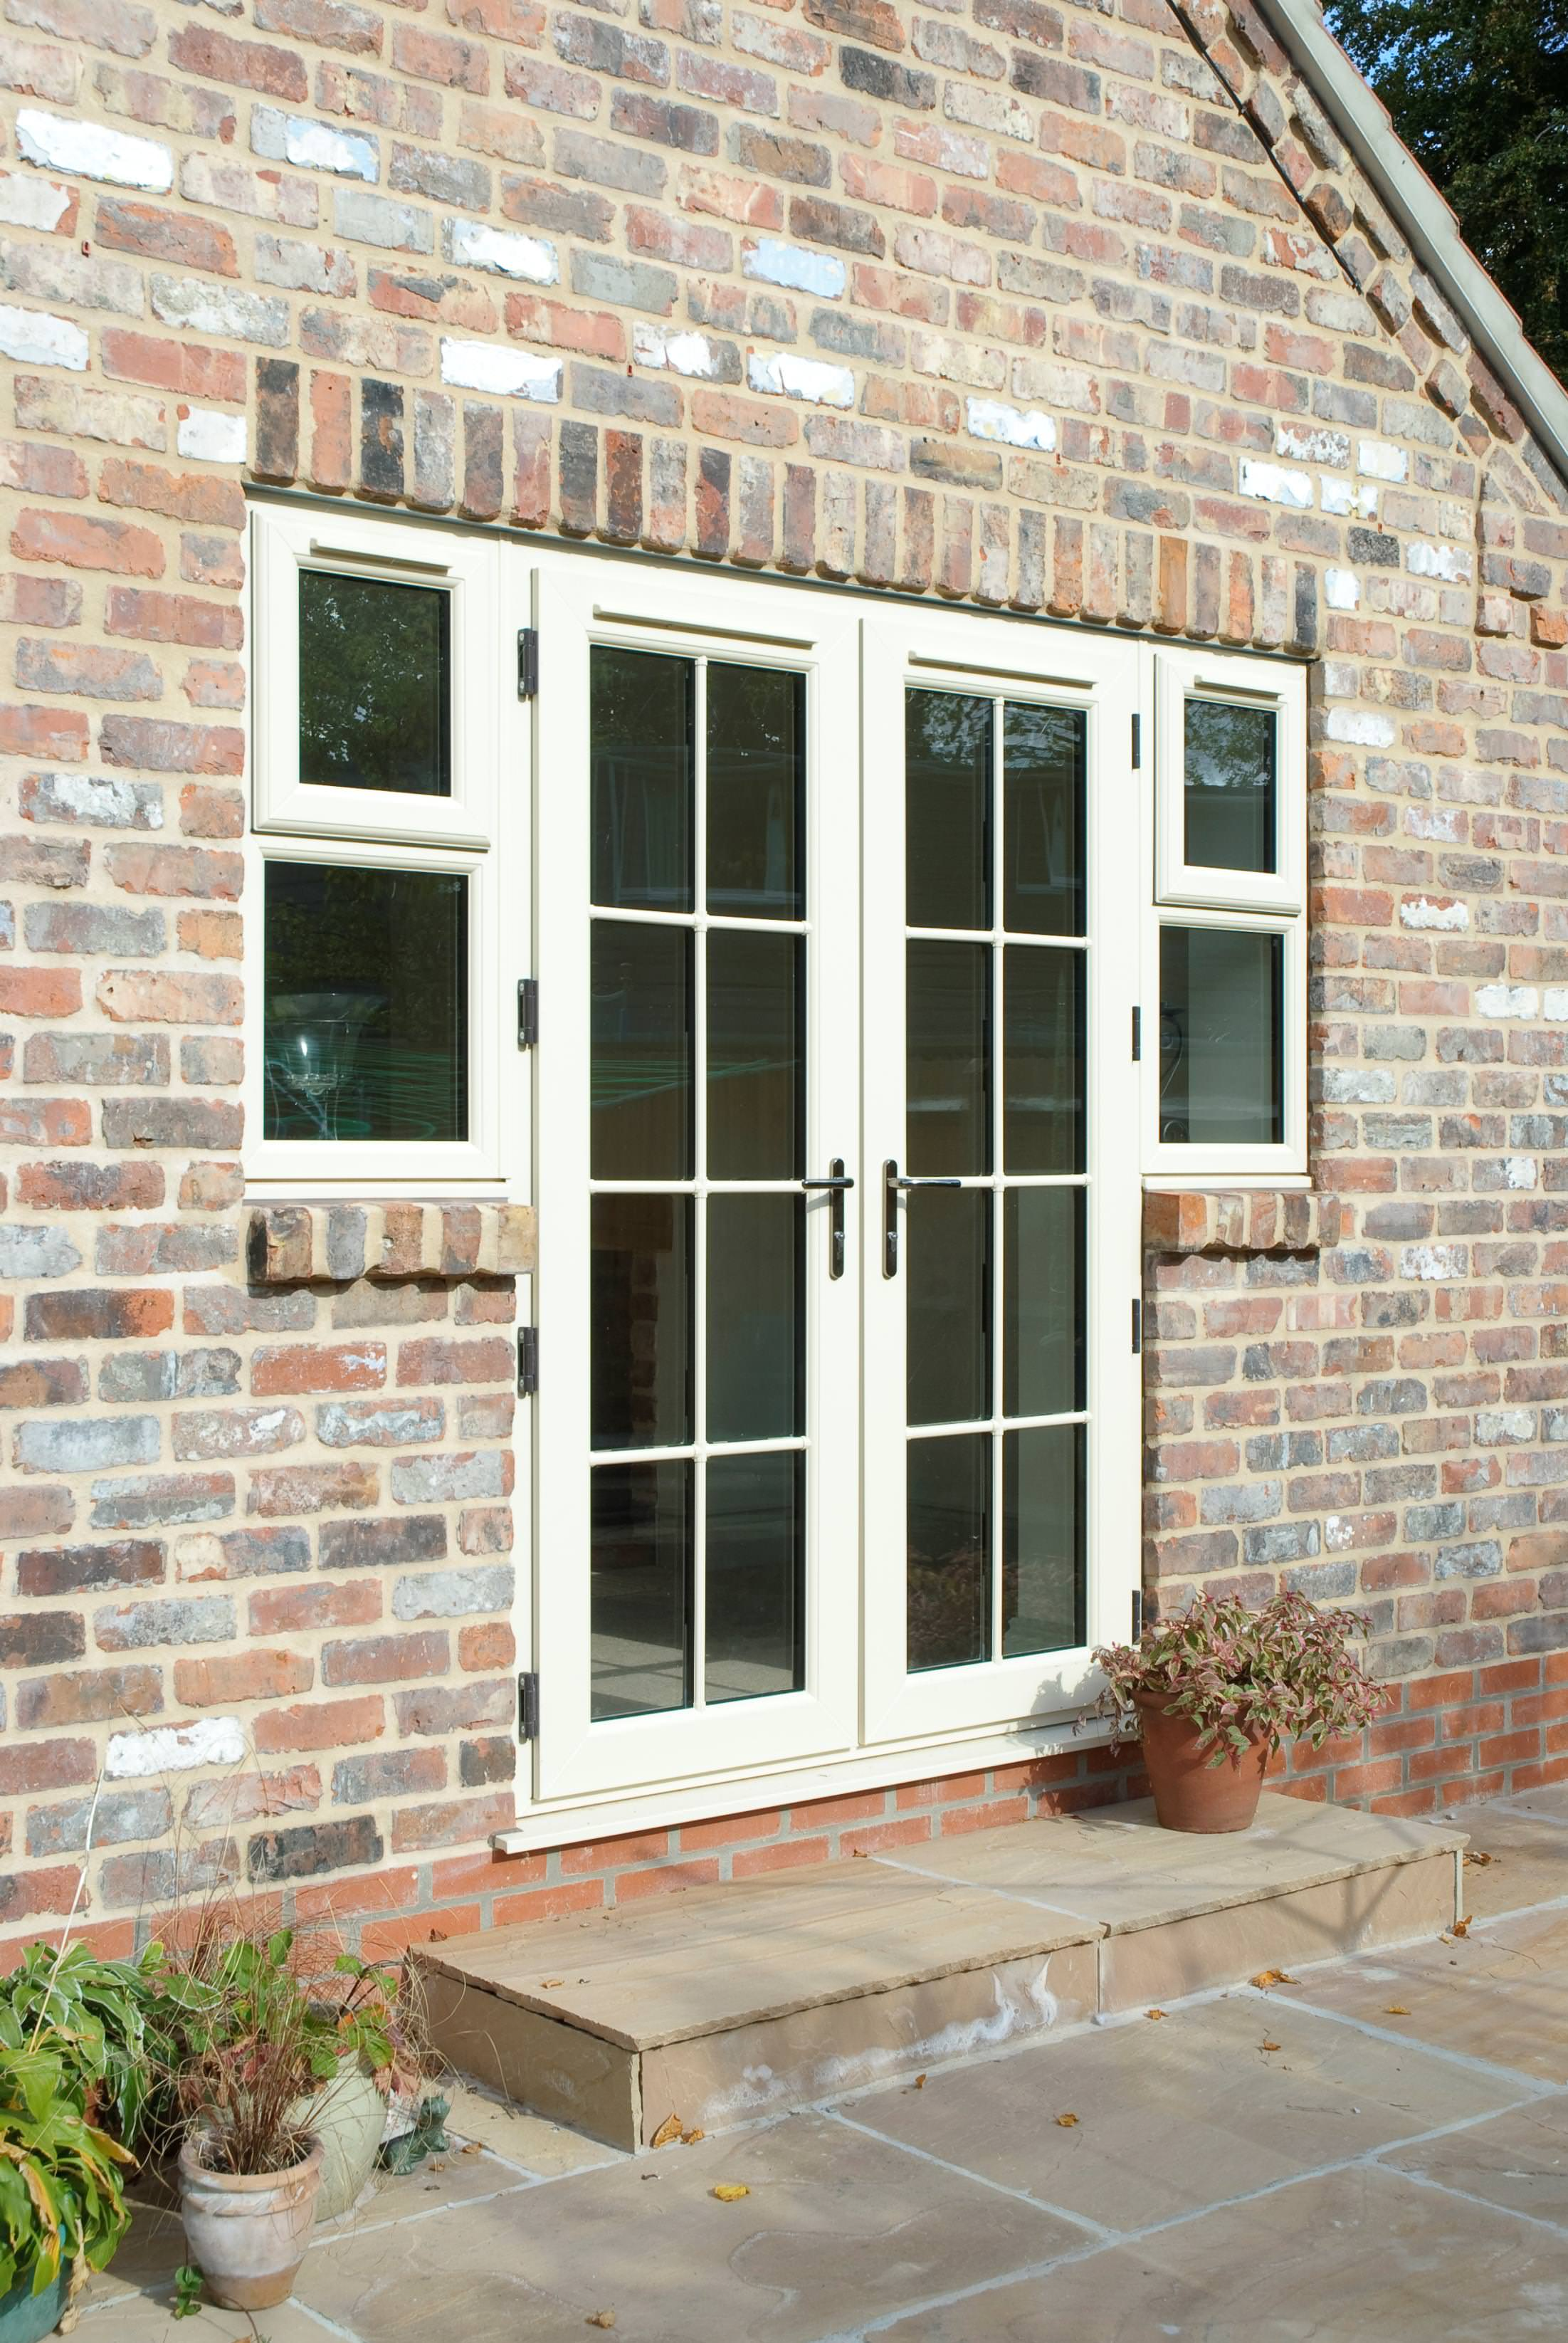 Upvc French Doors Slough Affordable Windows Construction Ltd Berkshire